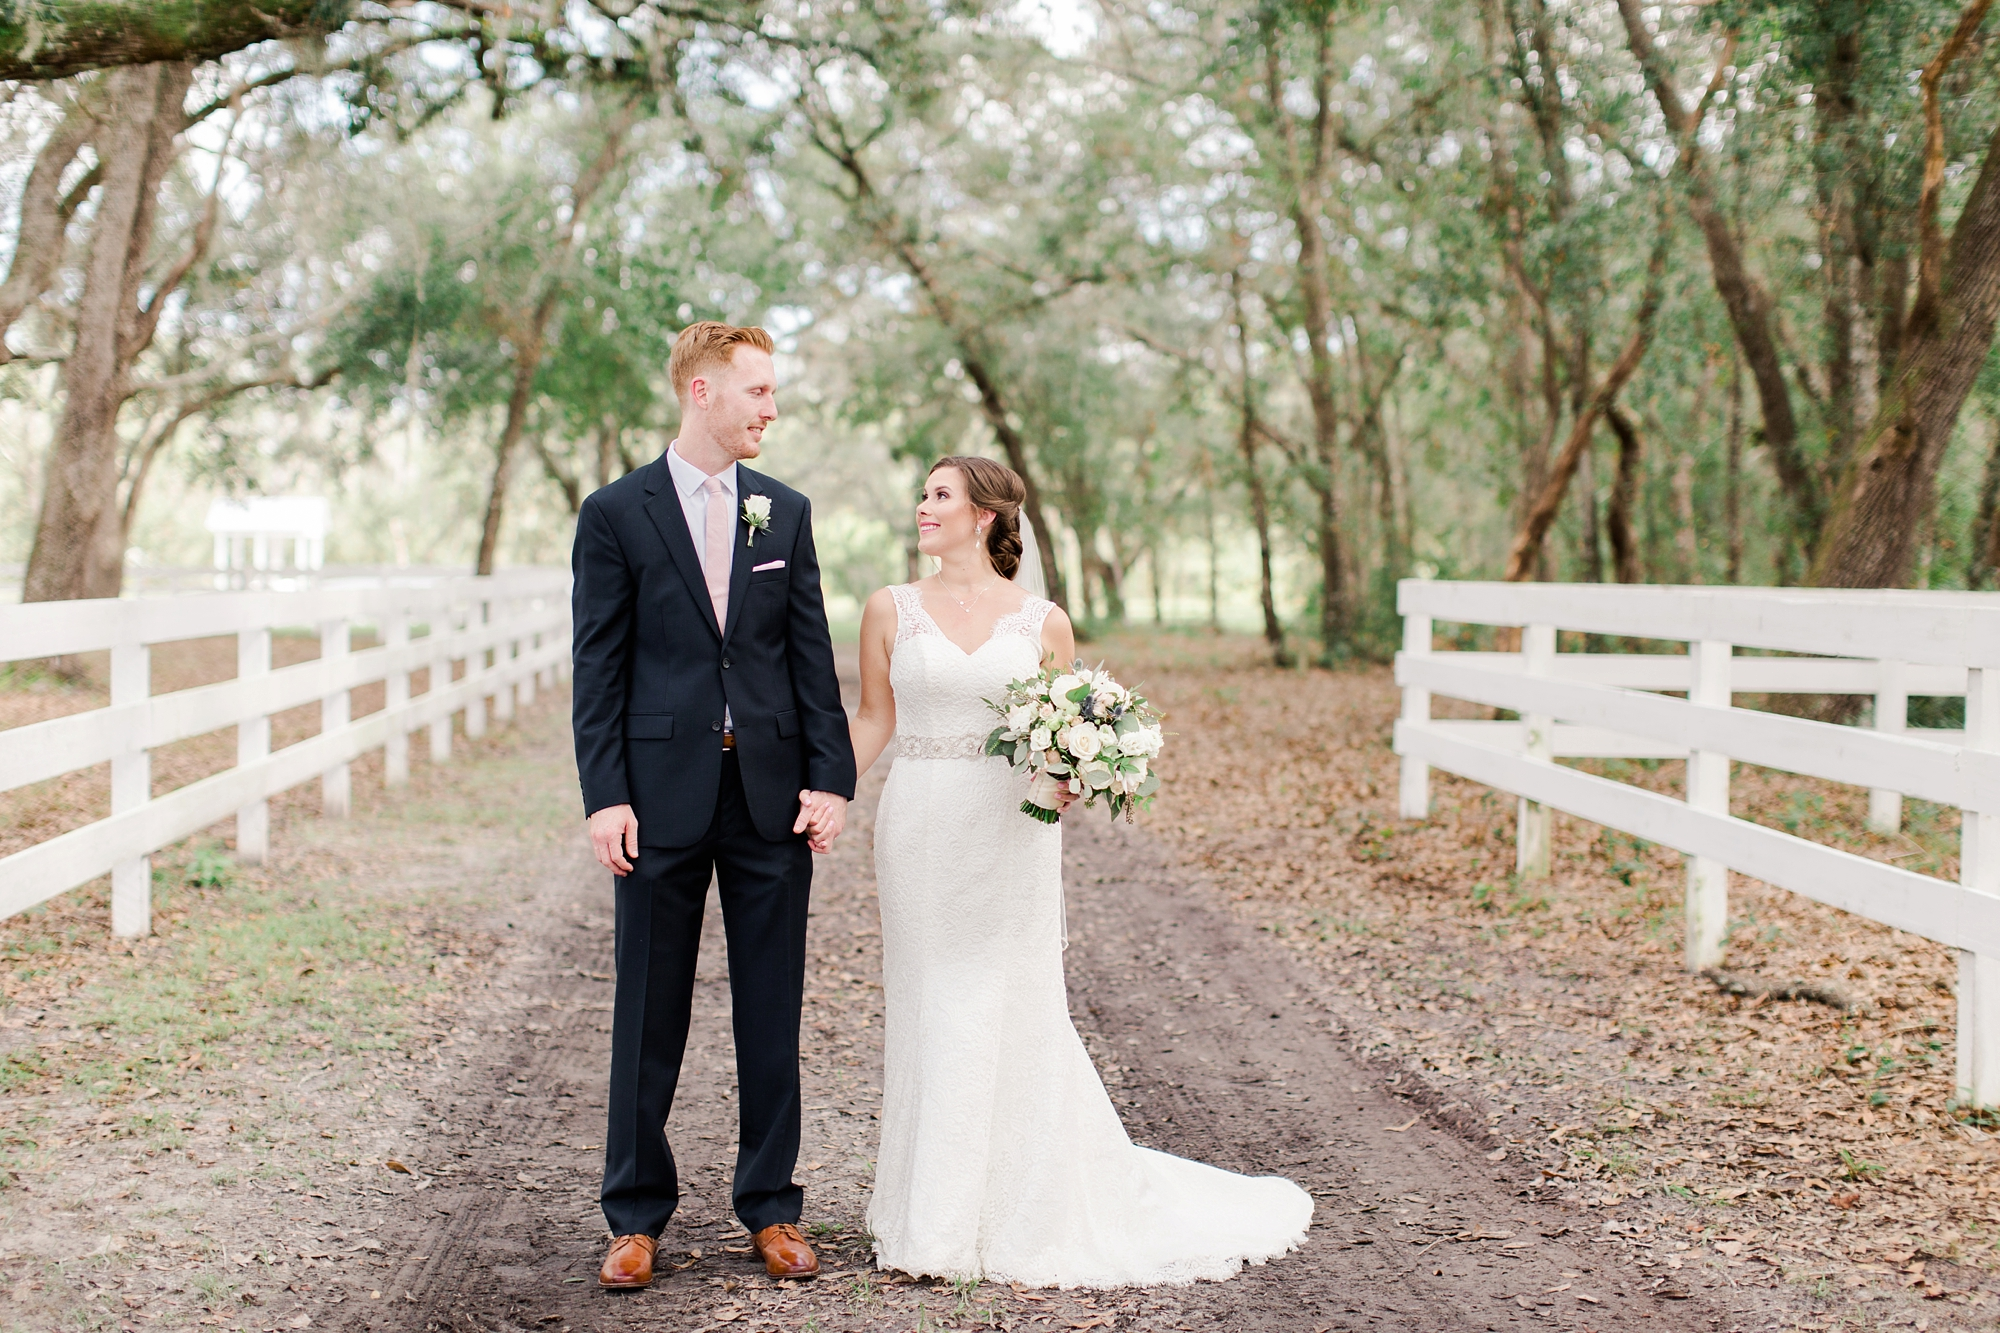 Natalie Broach Photography Meagan & Adam Wedding | Chandler Oaks Barn Jacksonville Florida . October Wedding | North Florida Wedding Photographer